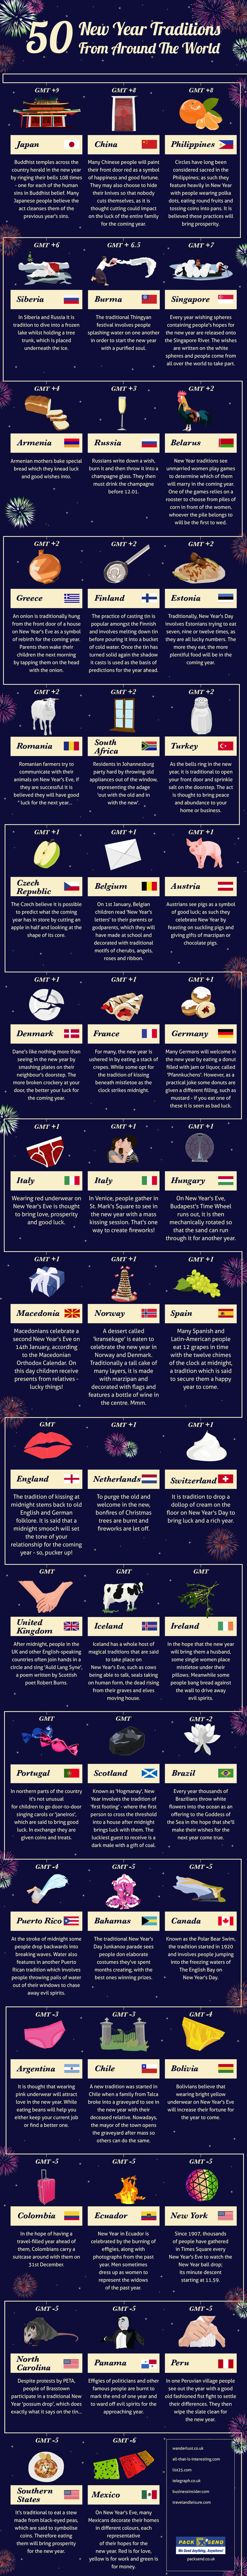 50 New Year Traditions From Around The World #infographic